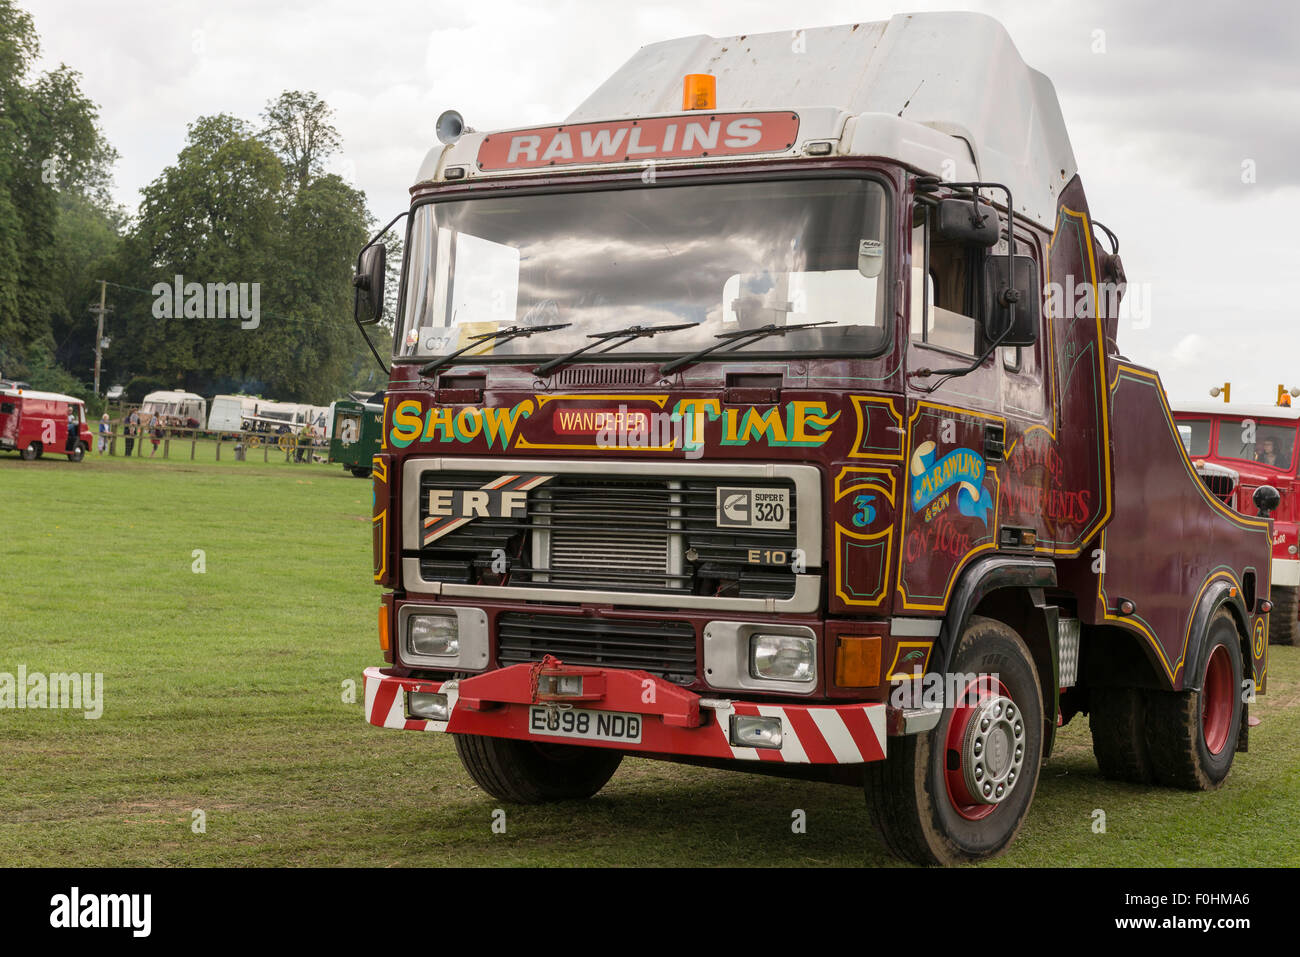 ERF E10 showmans lorry in a moving display at weald and downland museum in west sussex. - Stock Image